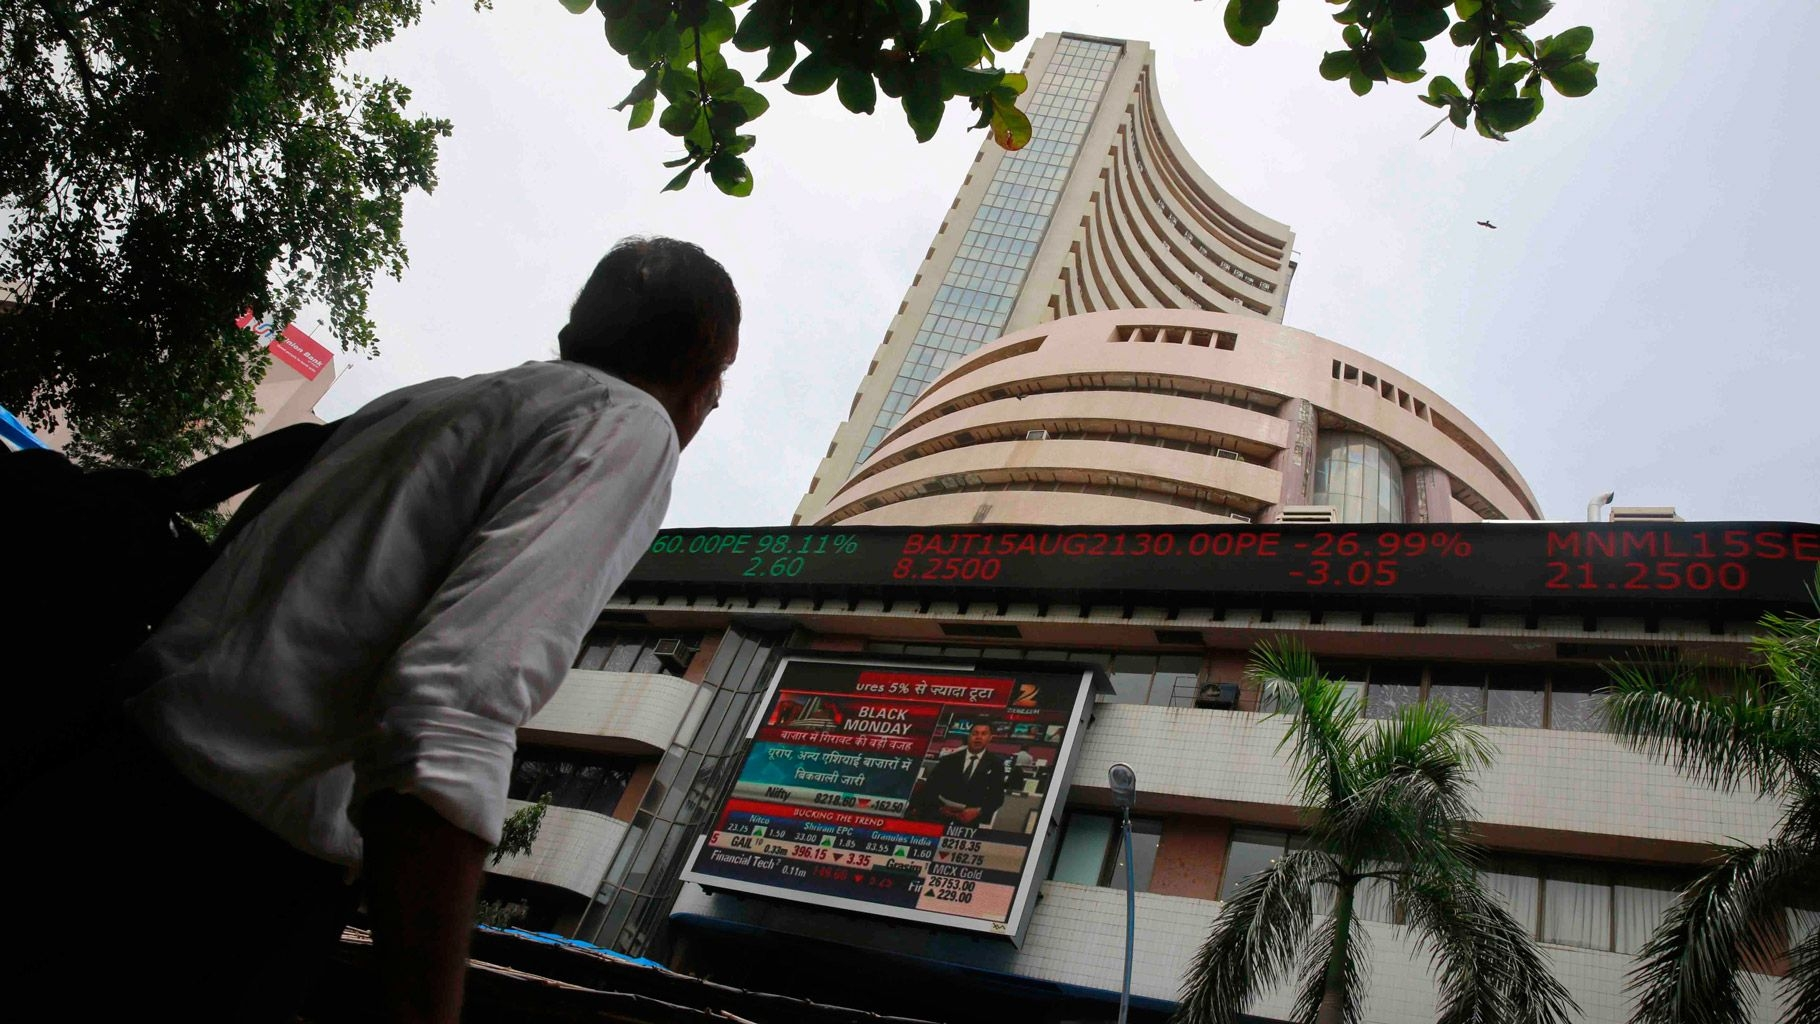 Sensex Loses 250 Points in Early Trade, Nifty Slips Under 11,000